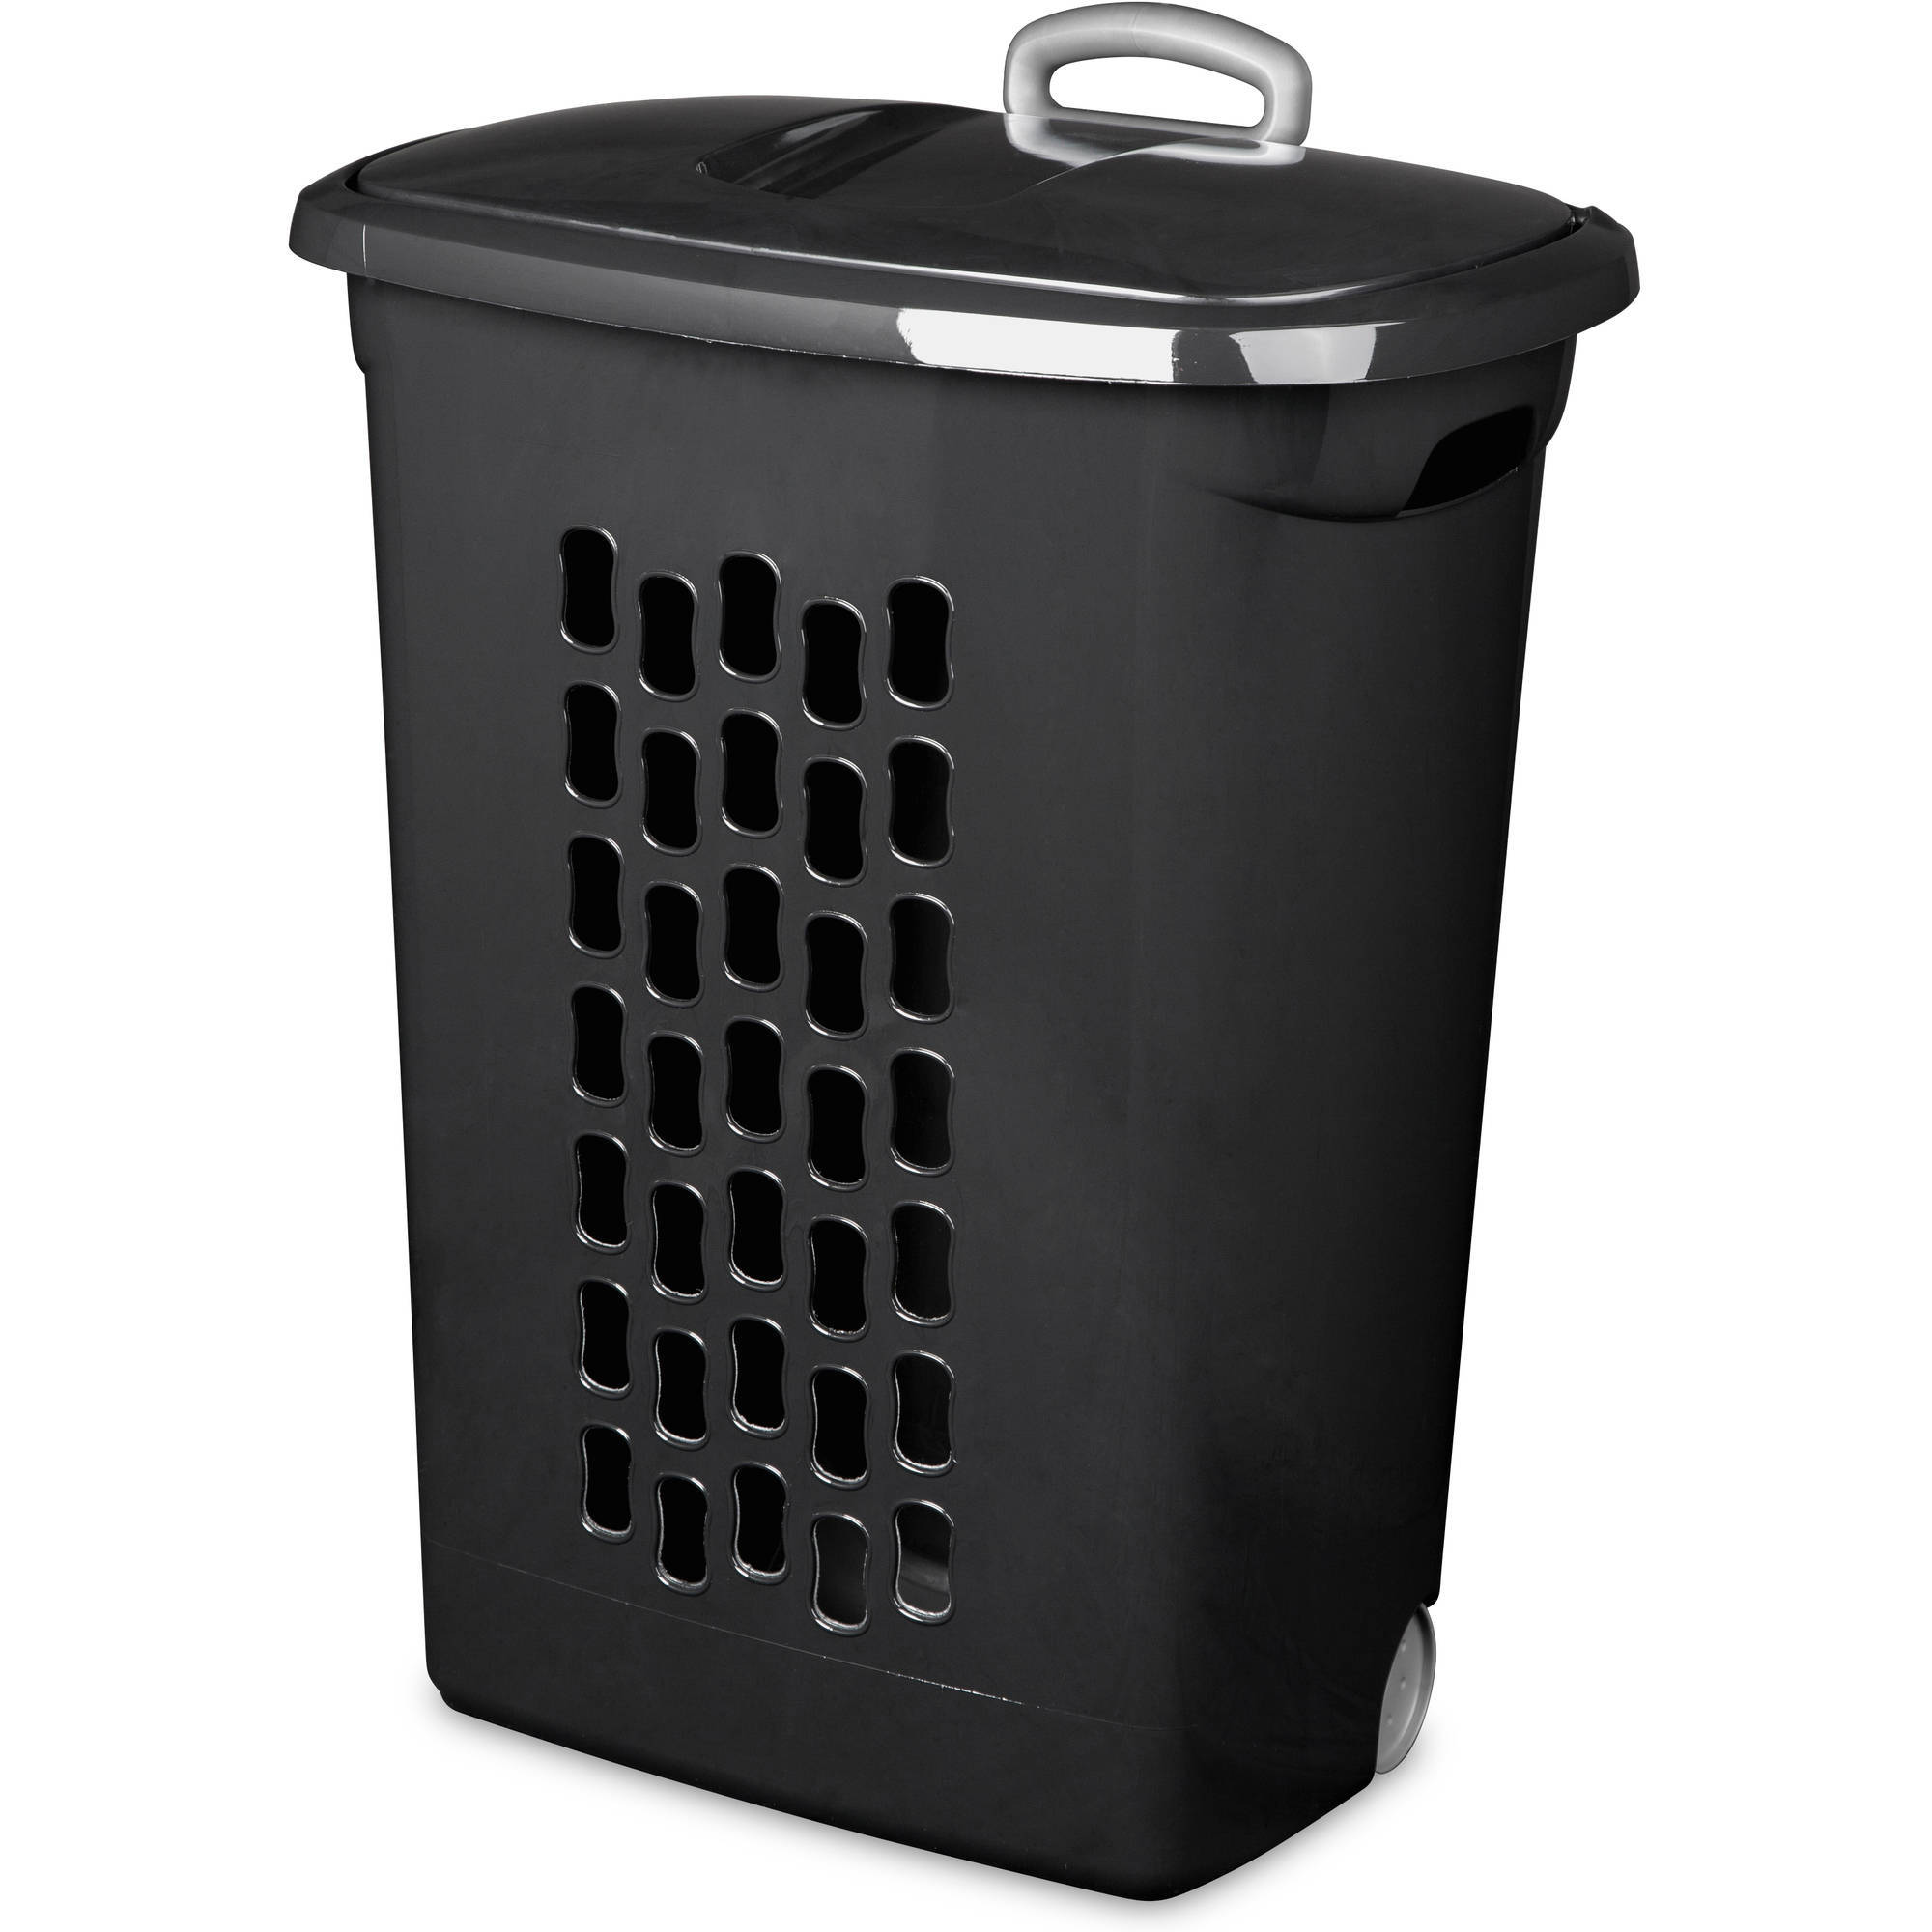 Sterilite Wheeled Laundry Hamper- Black (Available in Case of 3 or Single Unit)